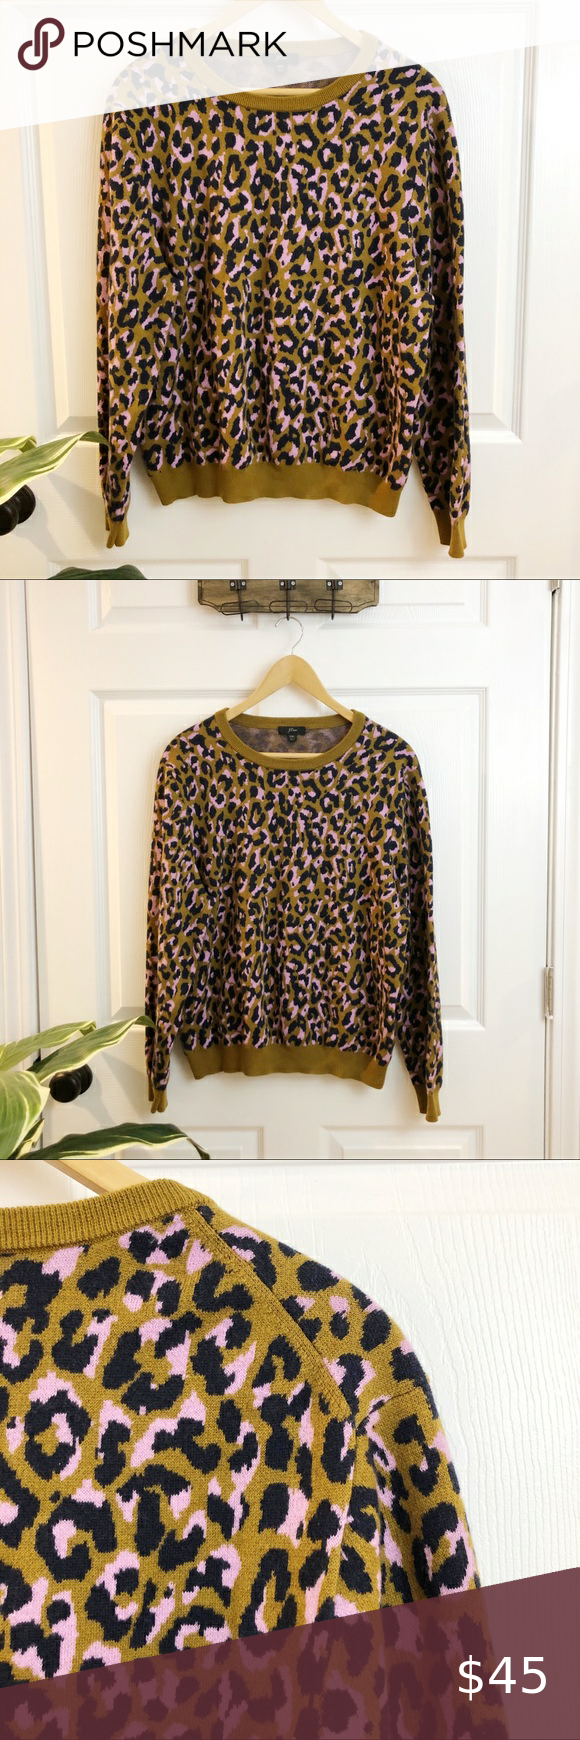 J.Crew | Green Purple Crewneck sweater in leopard J.Crew Classic Crewneck Leopard Print Sweater. In a comfy cotton-and-merino wool blend. Long Sleeves and cuffed sleeves and hem.   Gently worn and in great condition with no issues to disclose. Size XXL  Measurements Length: 24 inches Bust:  23 inches  J.Crew Item number: M0429  Cotton/polyester/merino wool. J. Crew Sweaters Crew & Scoop Necks